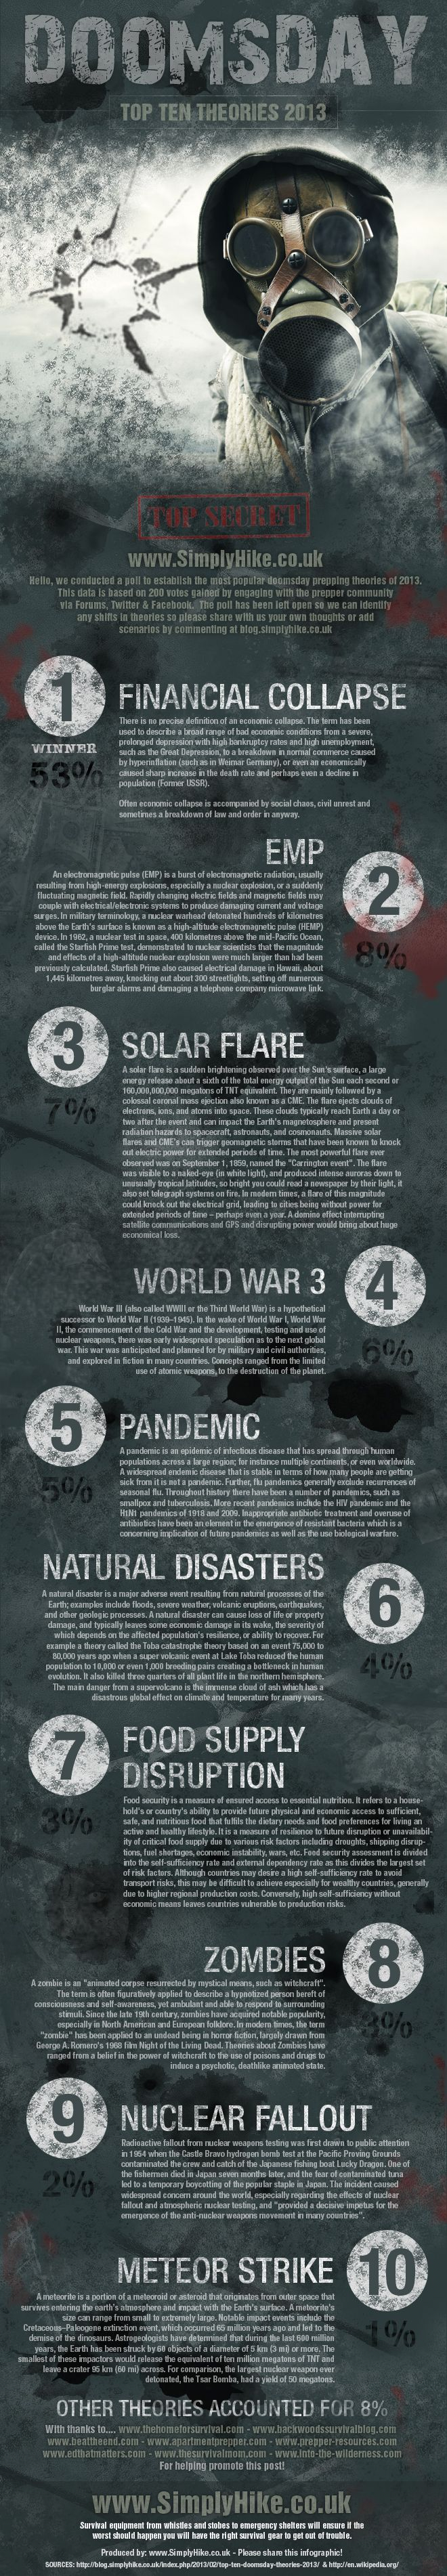 Great infographic showing the top ten doomsday scenarios of 2013 as voted on by the people!